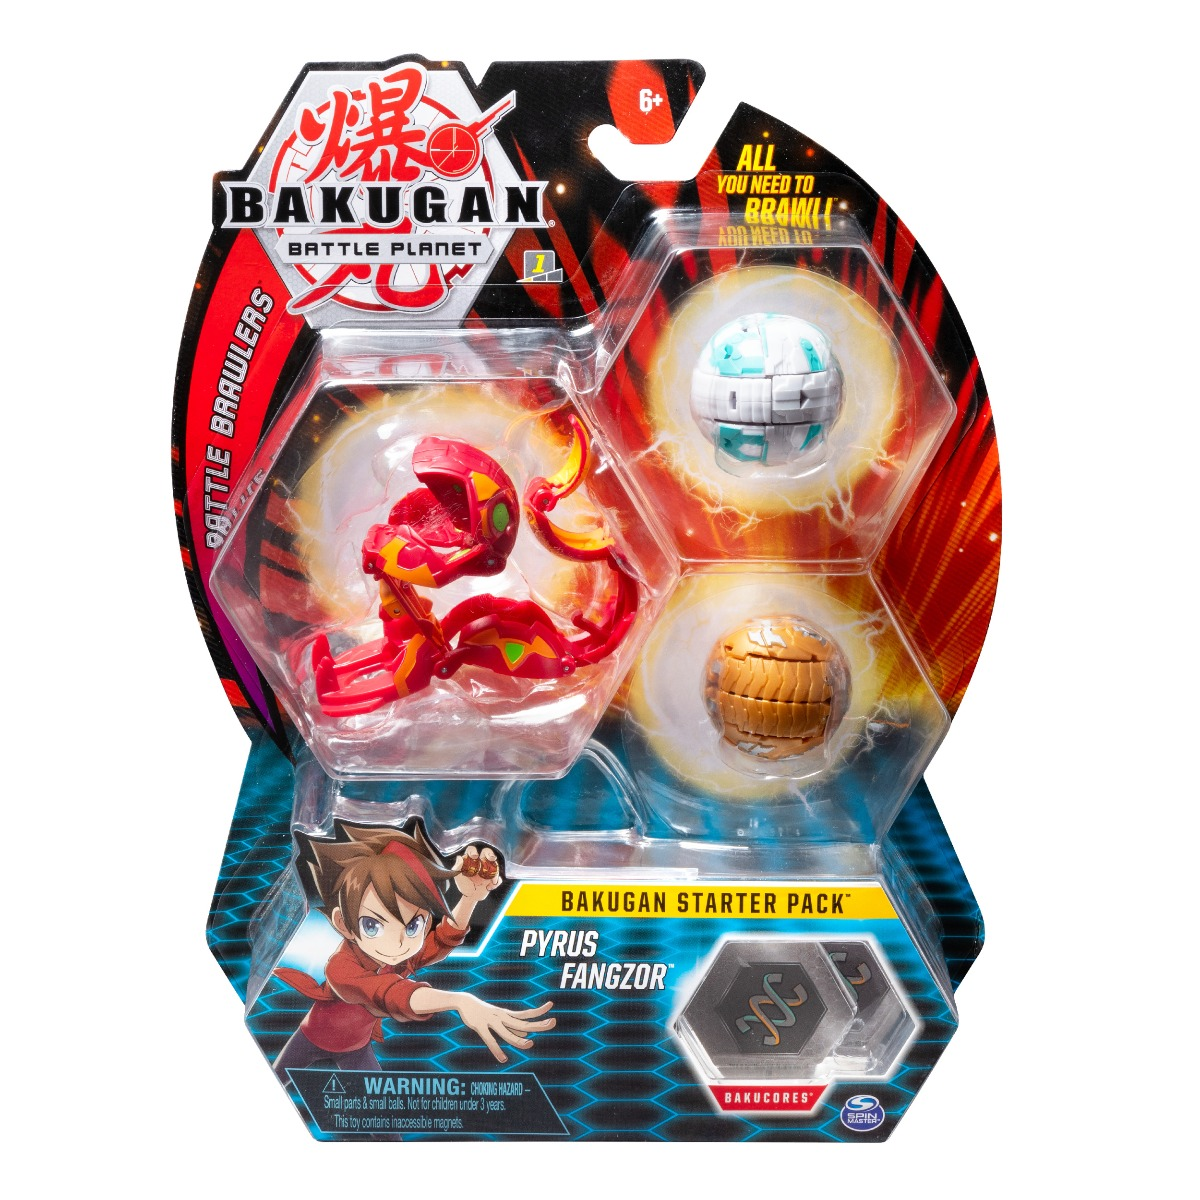 Set Bakugan Battle Planet Starter Pyrus Fangzor, 20108792